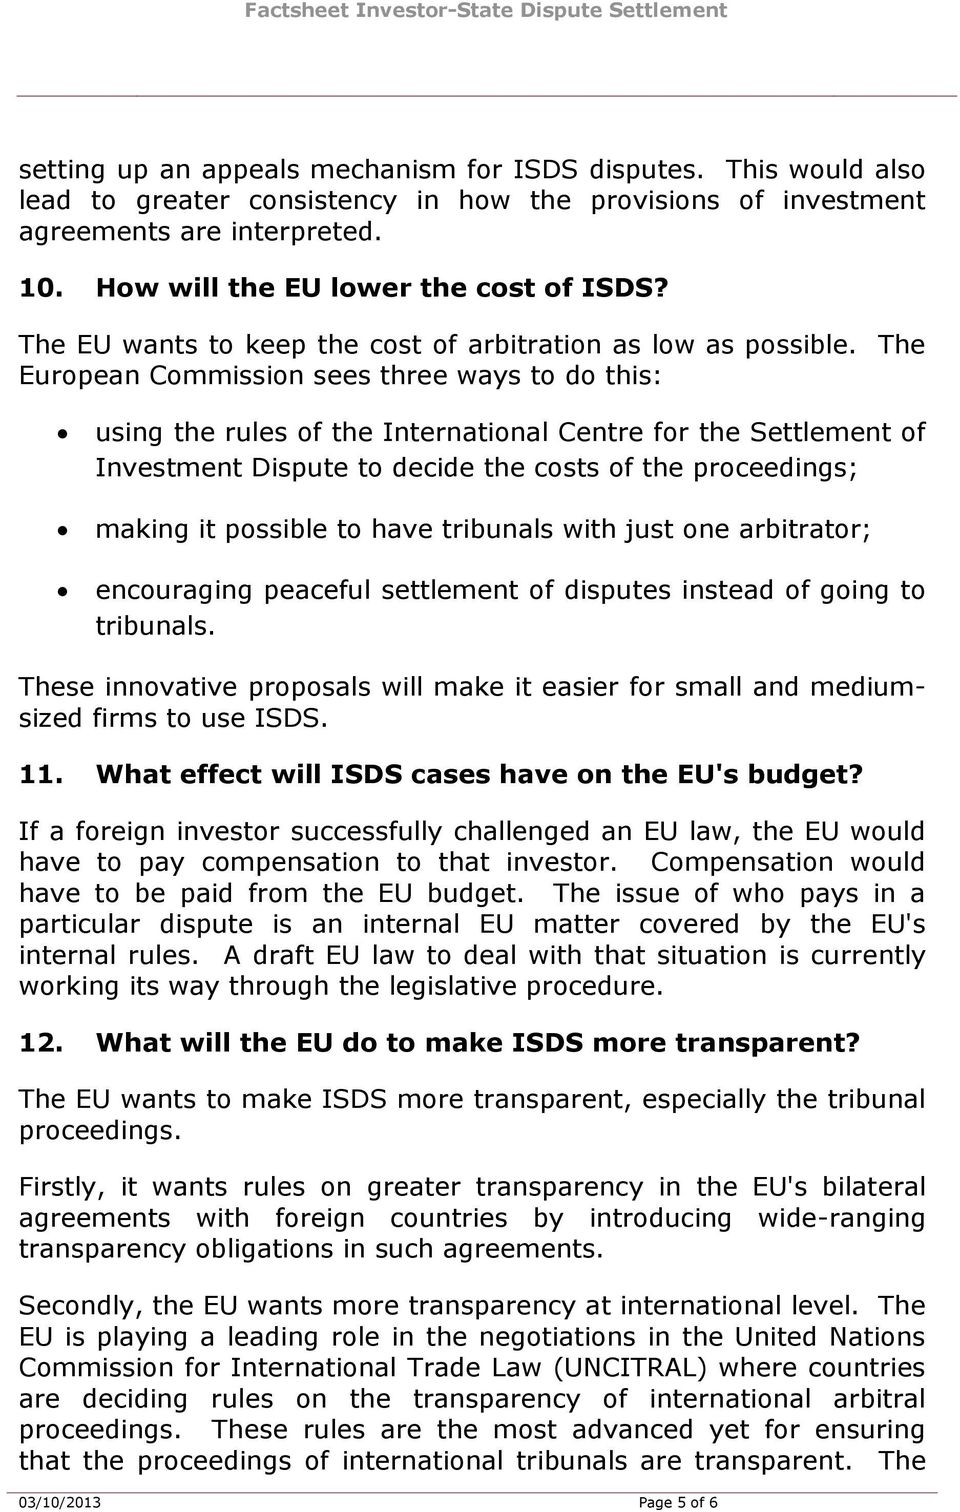 The European Commission sees three ways to do this: using the rules of the International Centre for the Settlement of Investment Dispute to decide the costs of the proceedings; making it possible to